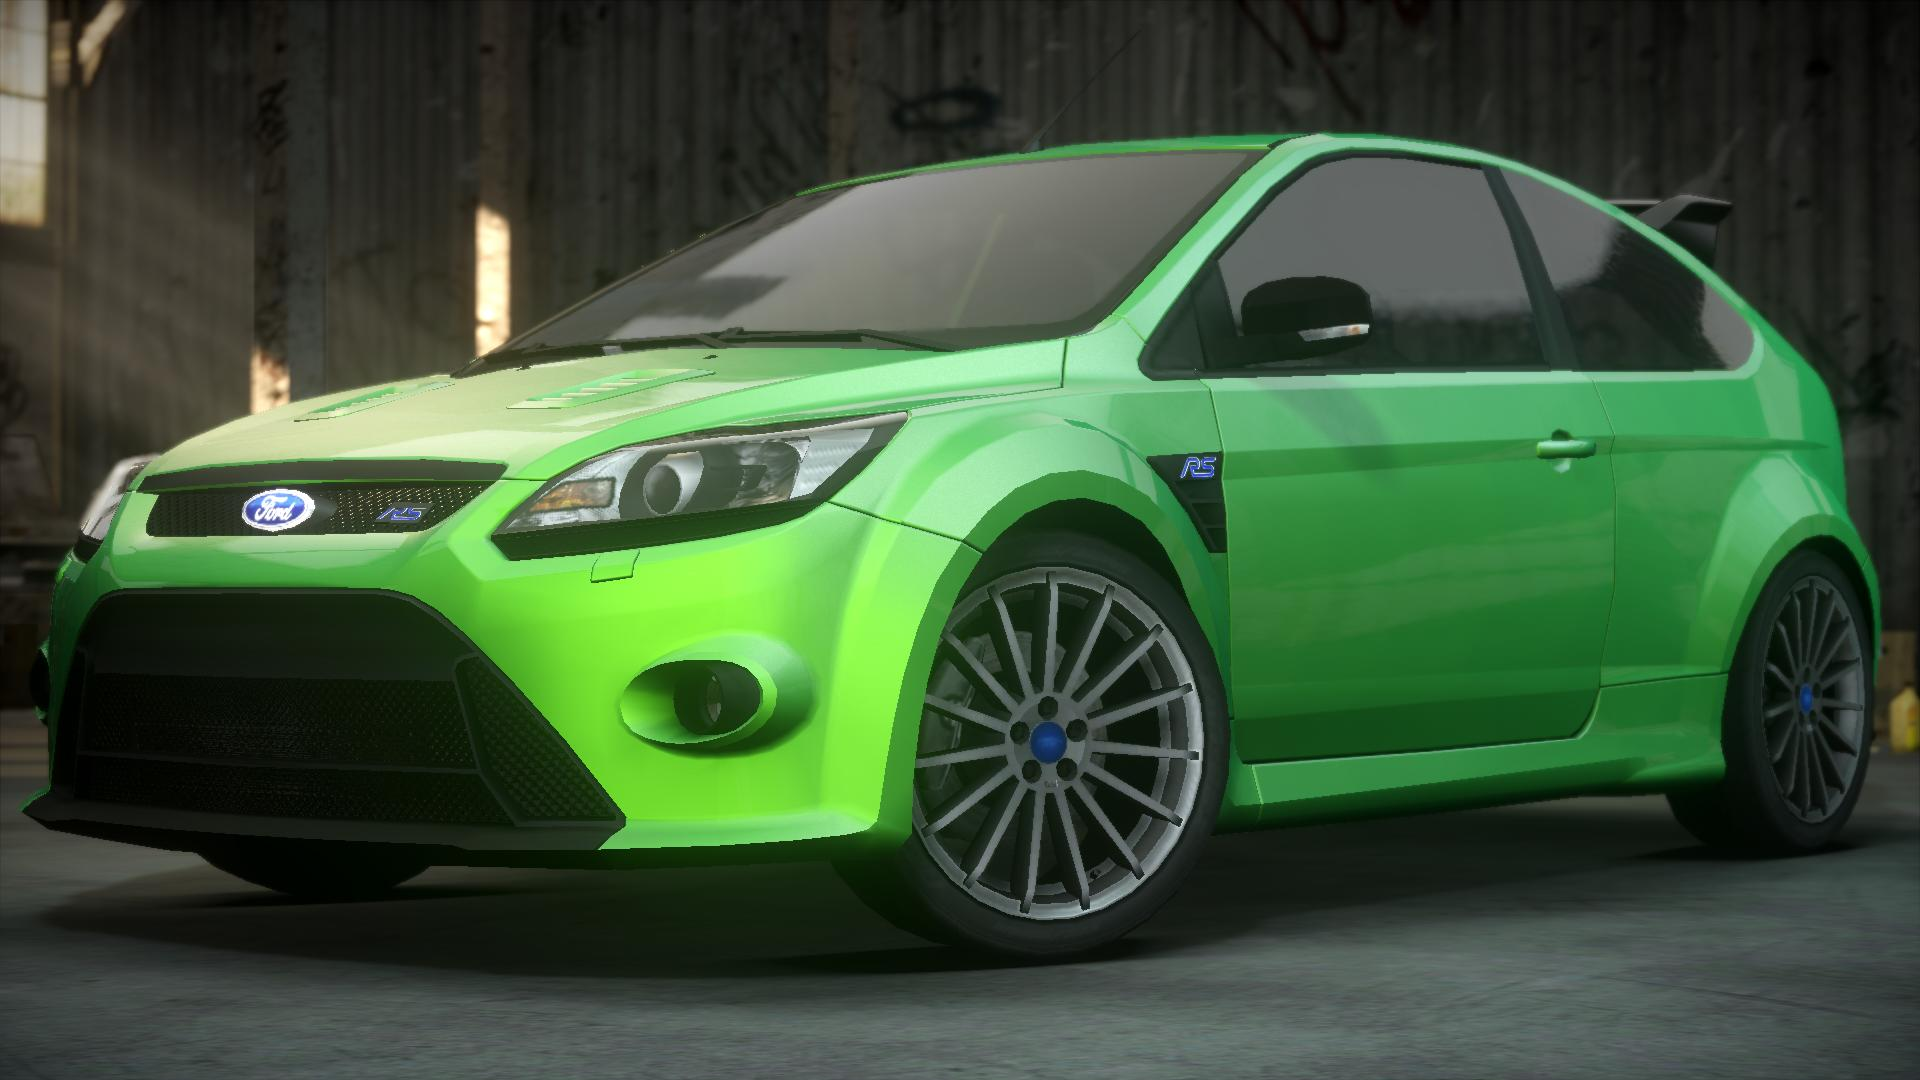 Ford Focus RS (Gen. 2)